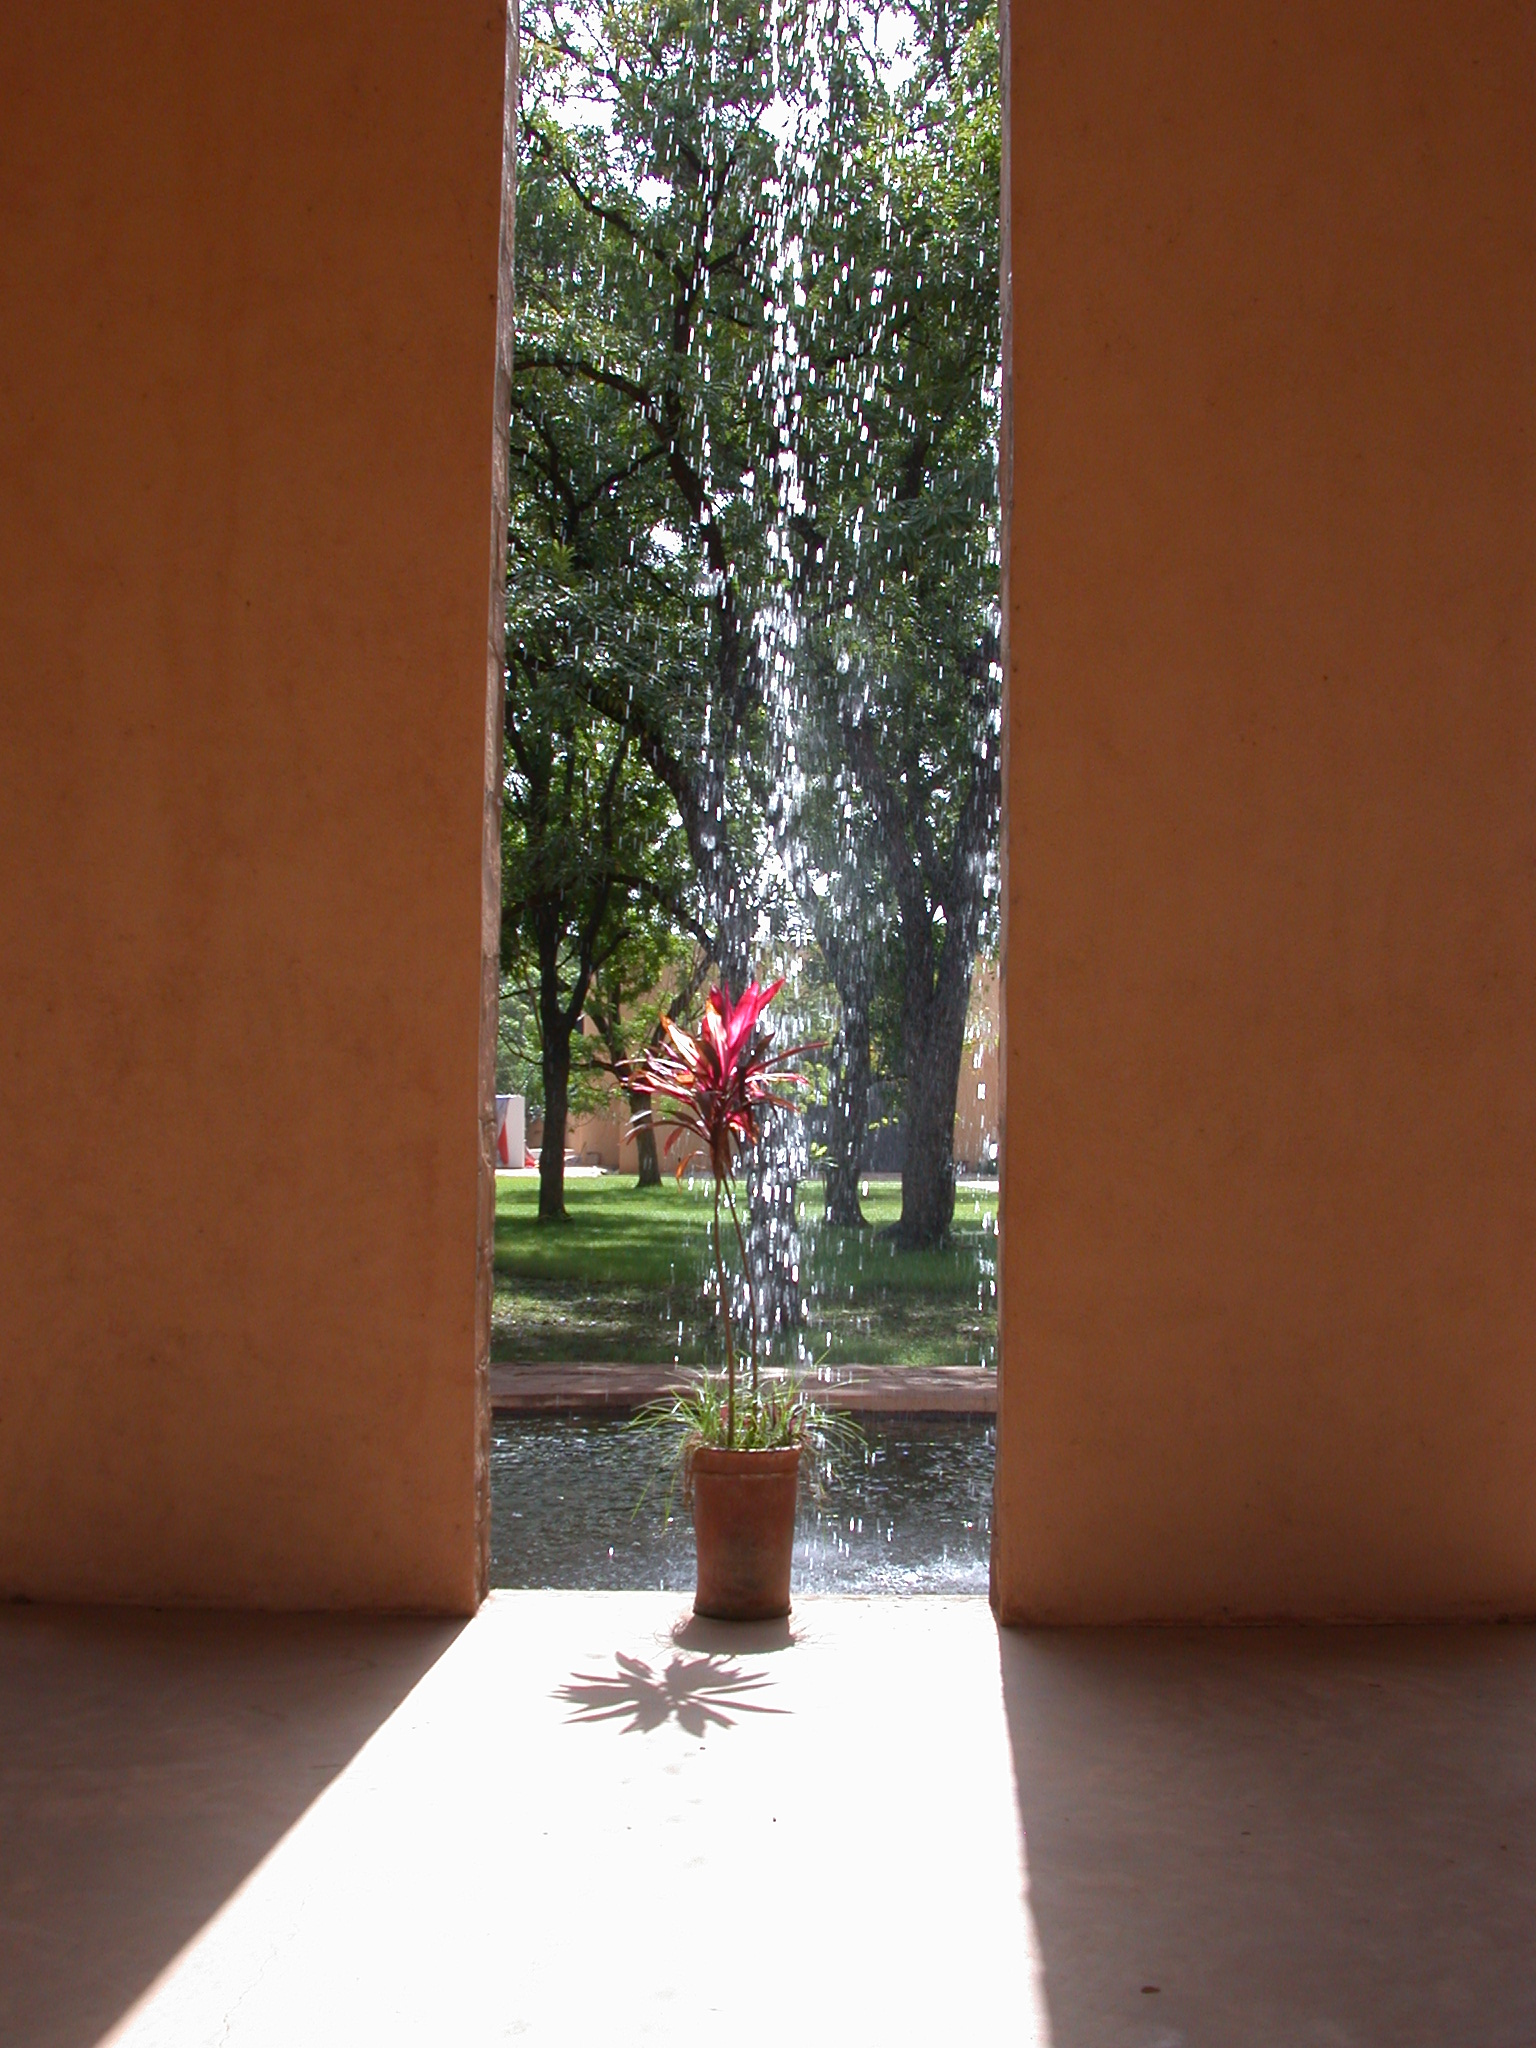 Waterfall Over Flower at Entrance of Musee Nationale du Mali